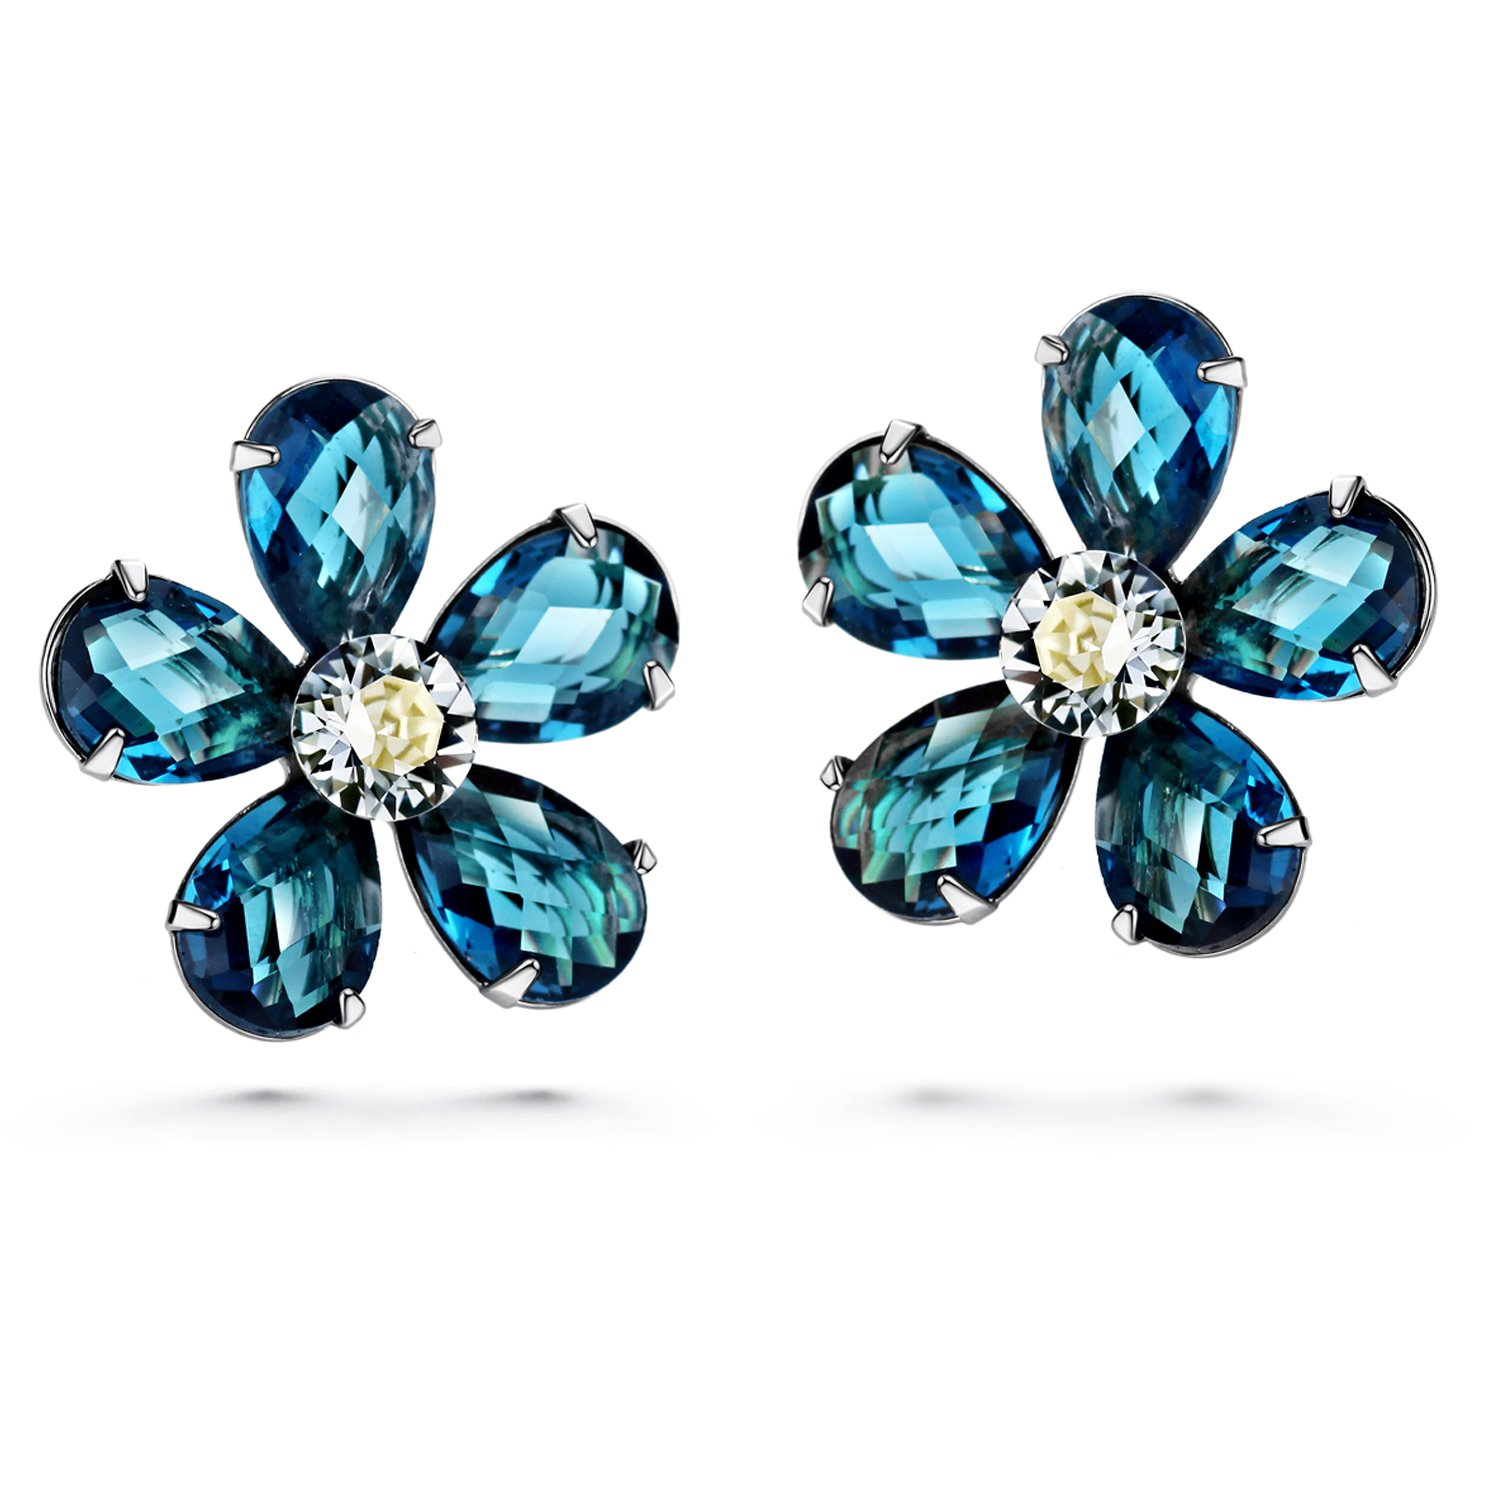 JOUDOO 16K Gold Flower Blue Crystal Platinum Earrings with Screw Back and Post Stud Earrings